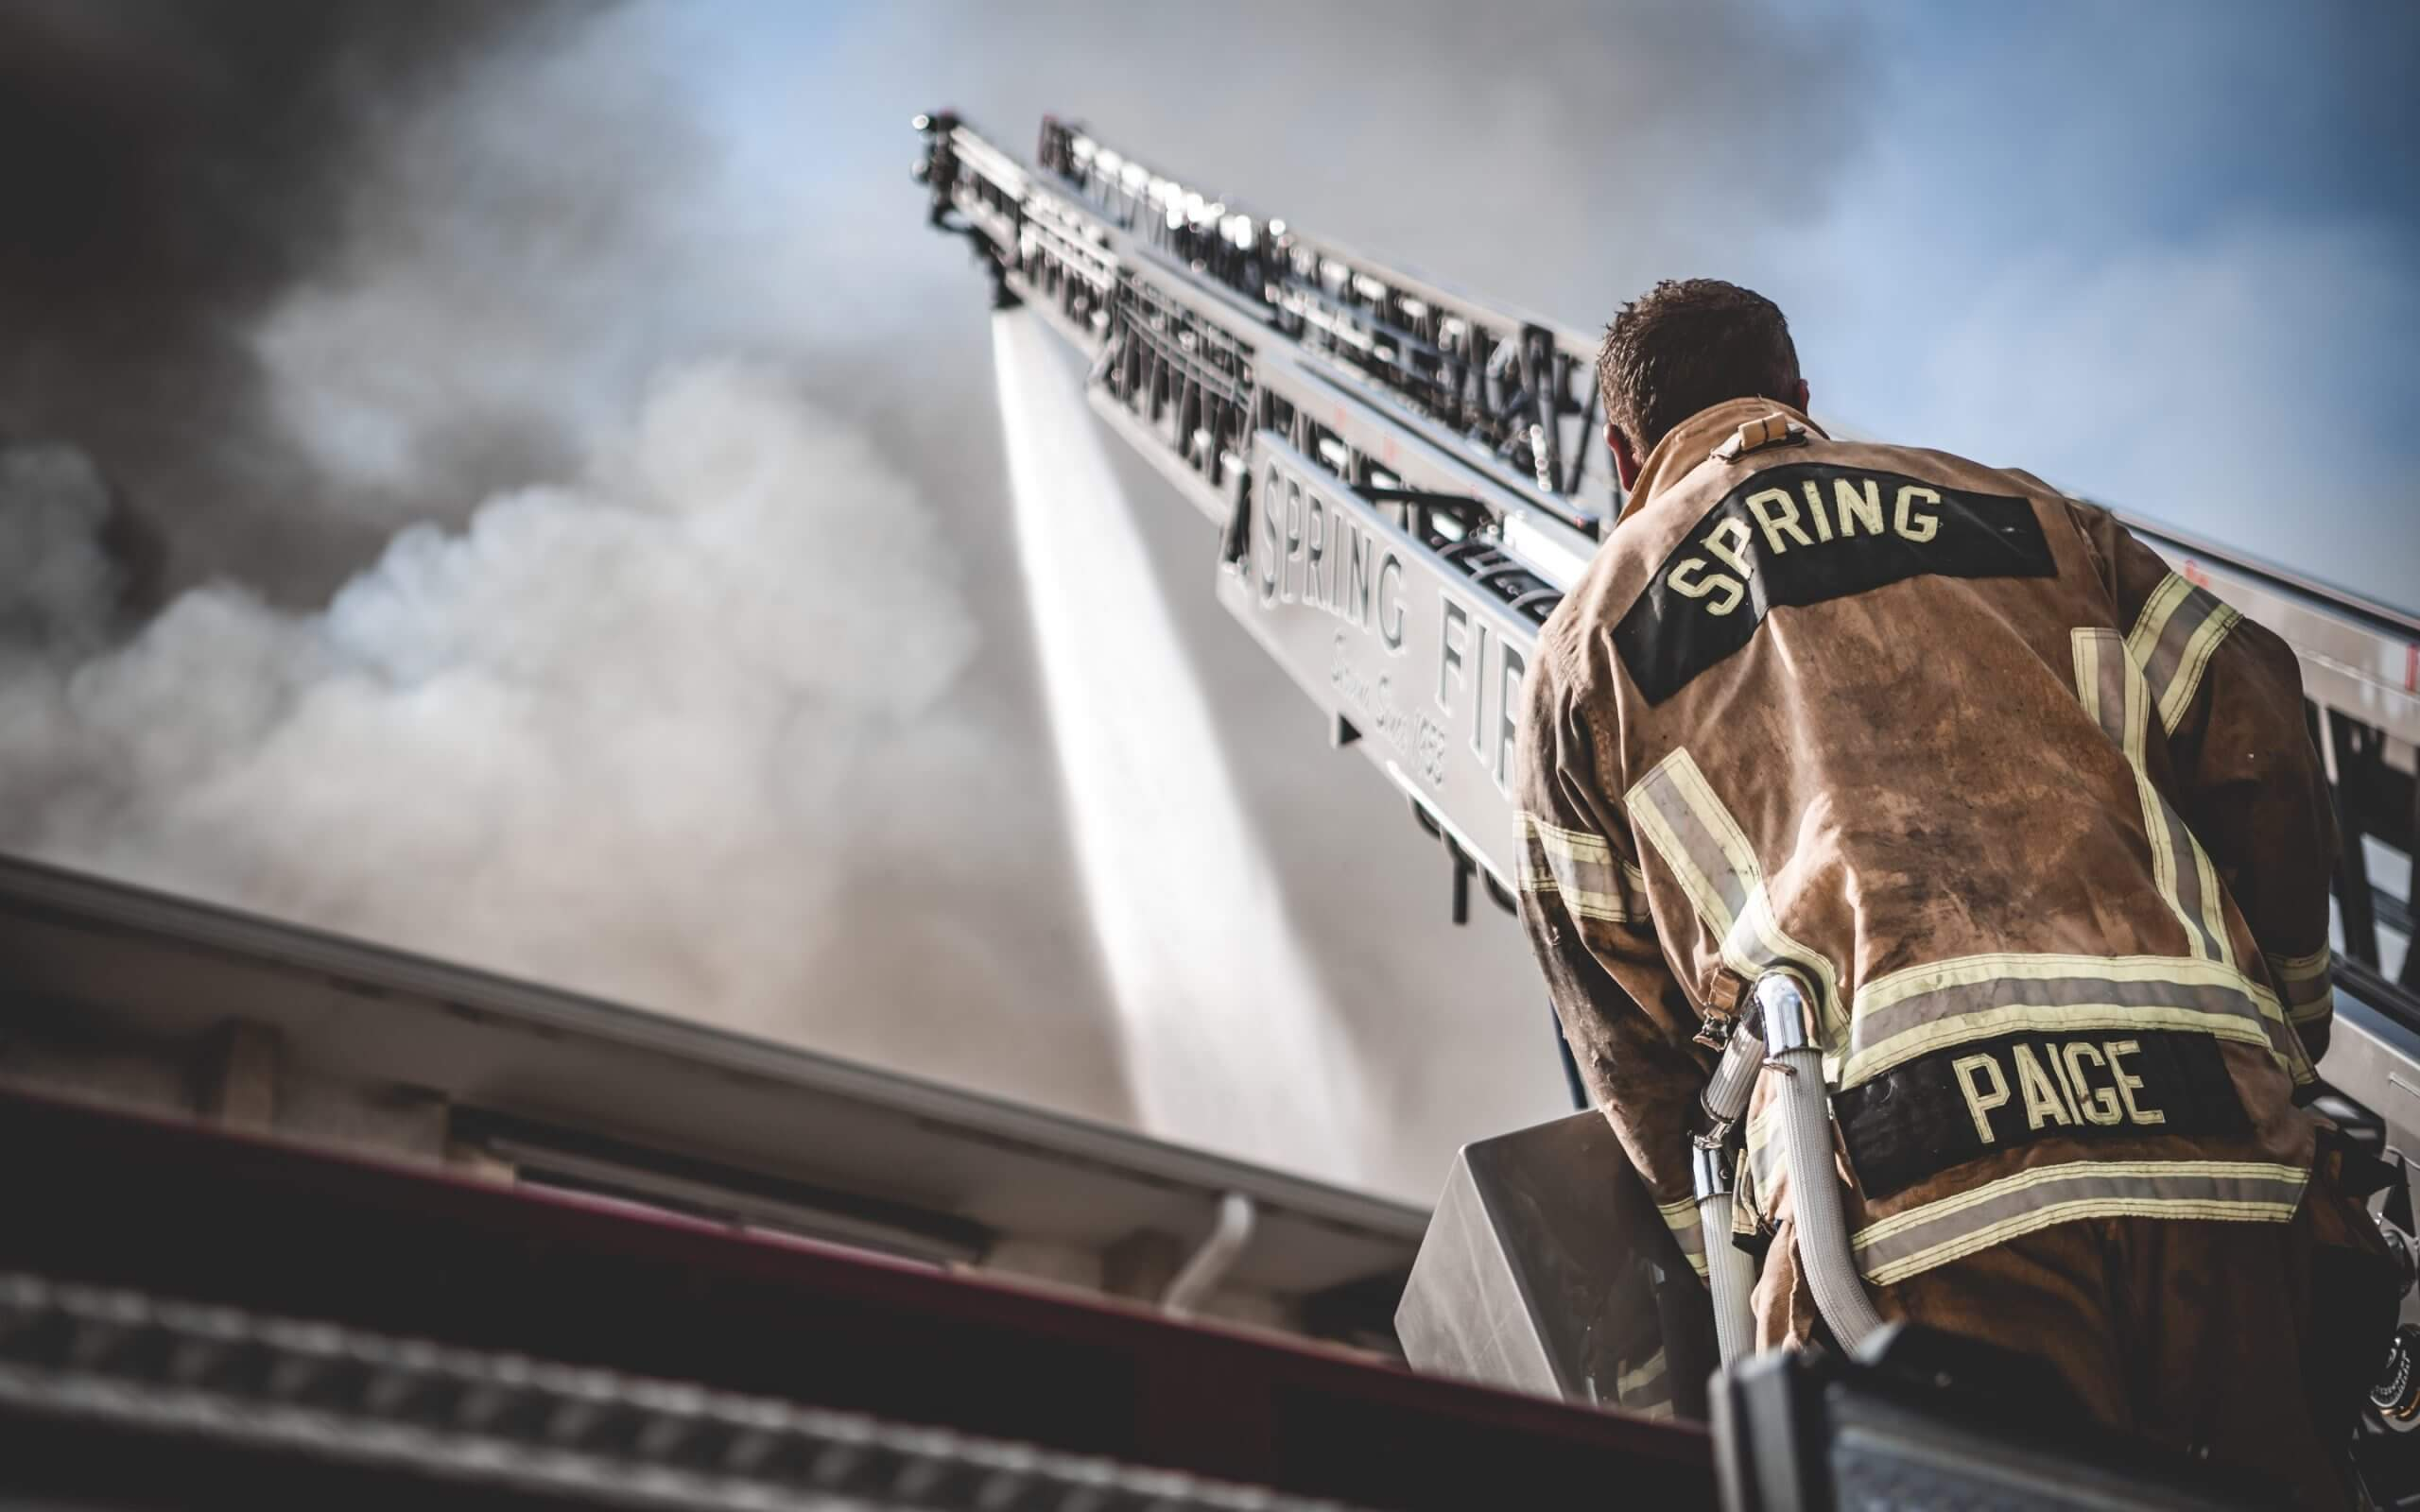 Eight Spring firefighters Share 100 Club Firefighter of the Year Honors